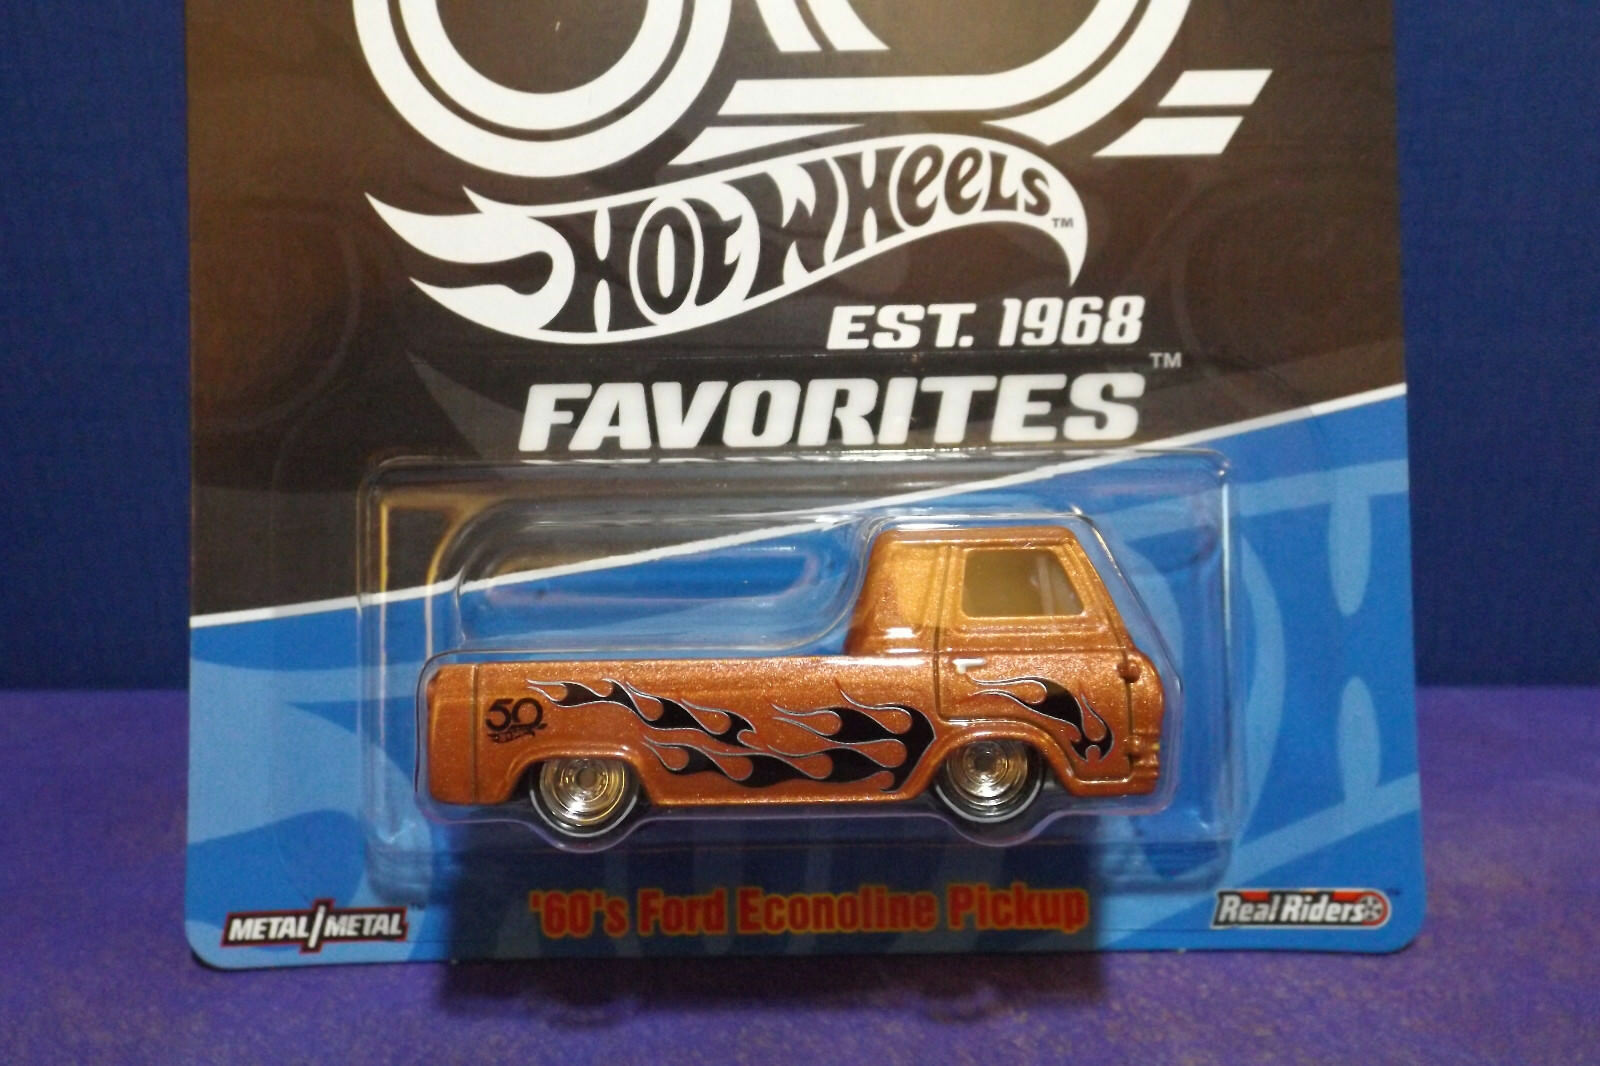 Hot Wheels 50th Anniversary Diecast 18m S Ford Econoline 1949 Van Norton Secured Powered By Verisign